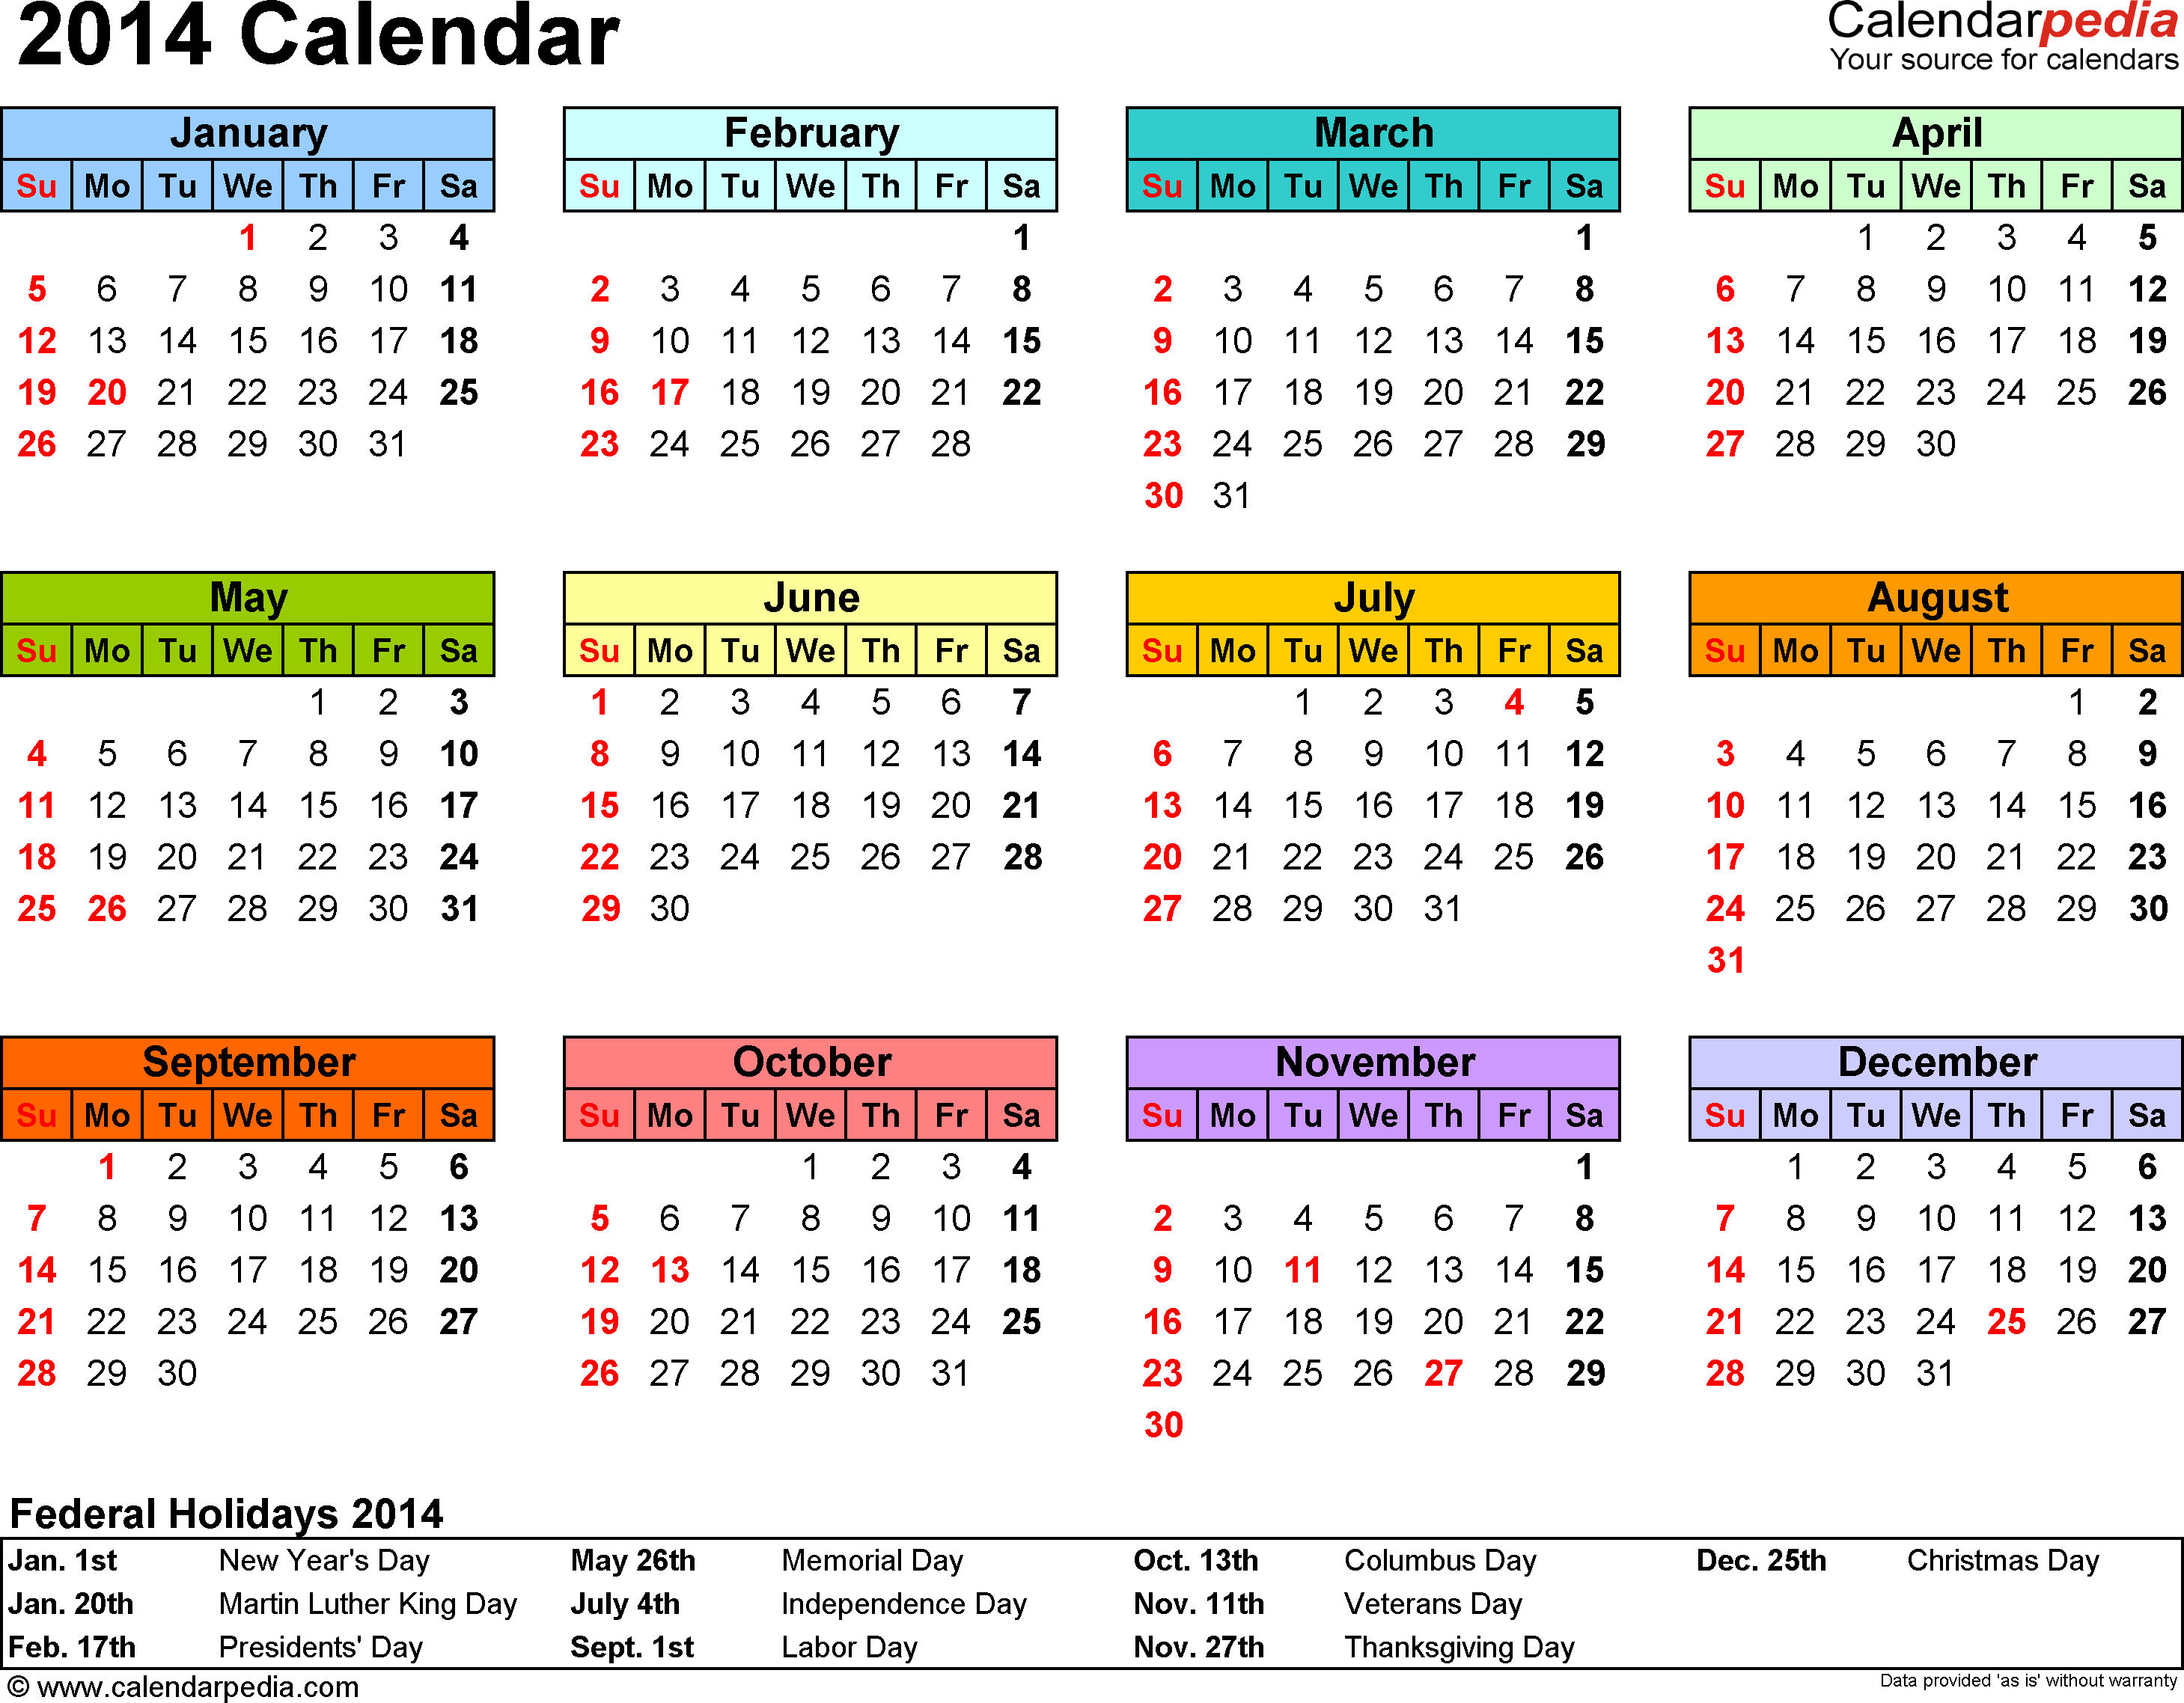 Template 7: 2014 Calendar for Word, year at a glance, 1 page, in color